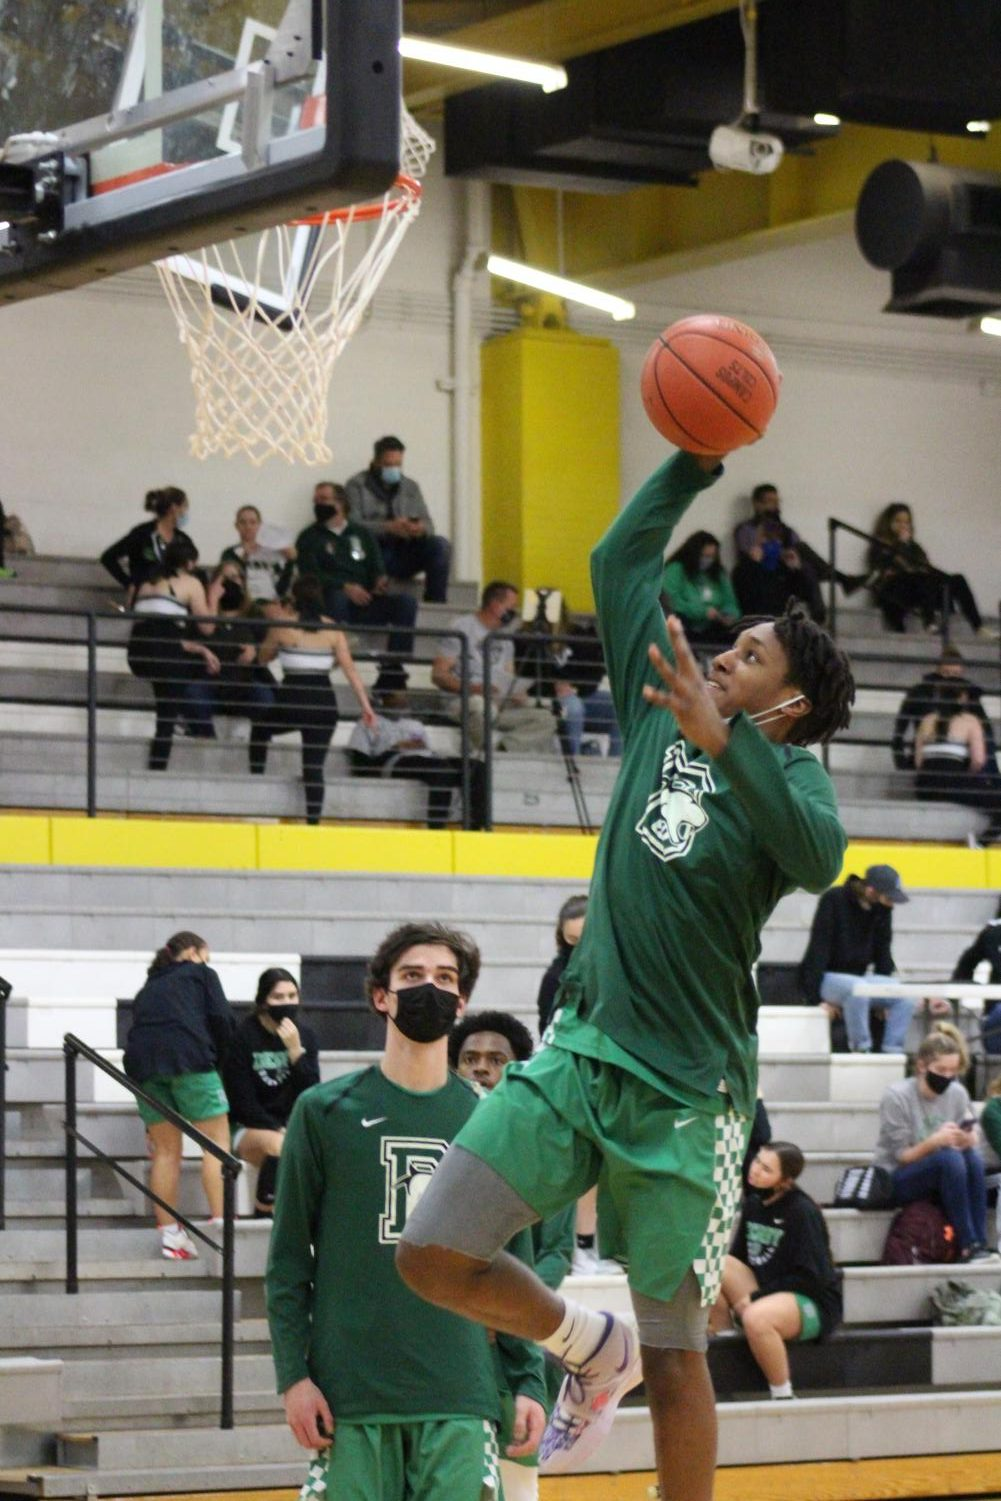 Derby+vs.+Campus+basketball+%28Photos+by+Janeah+Berry%29